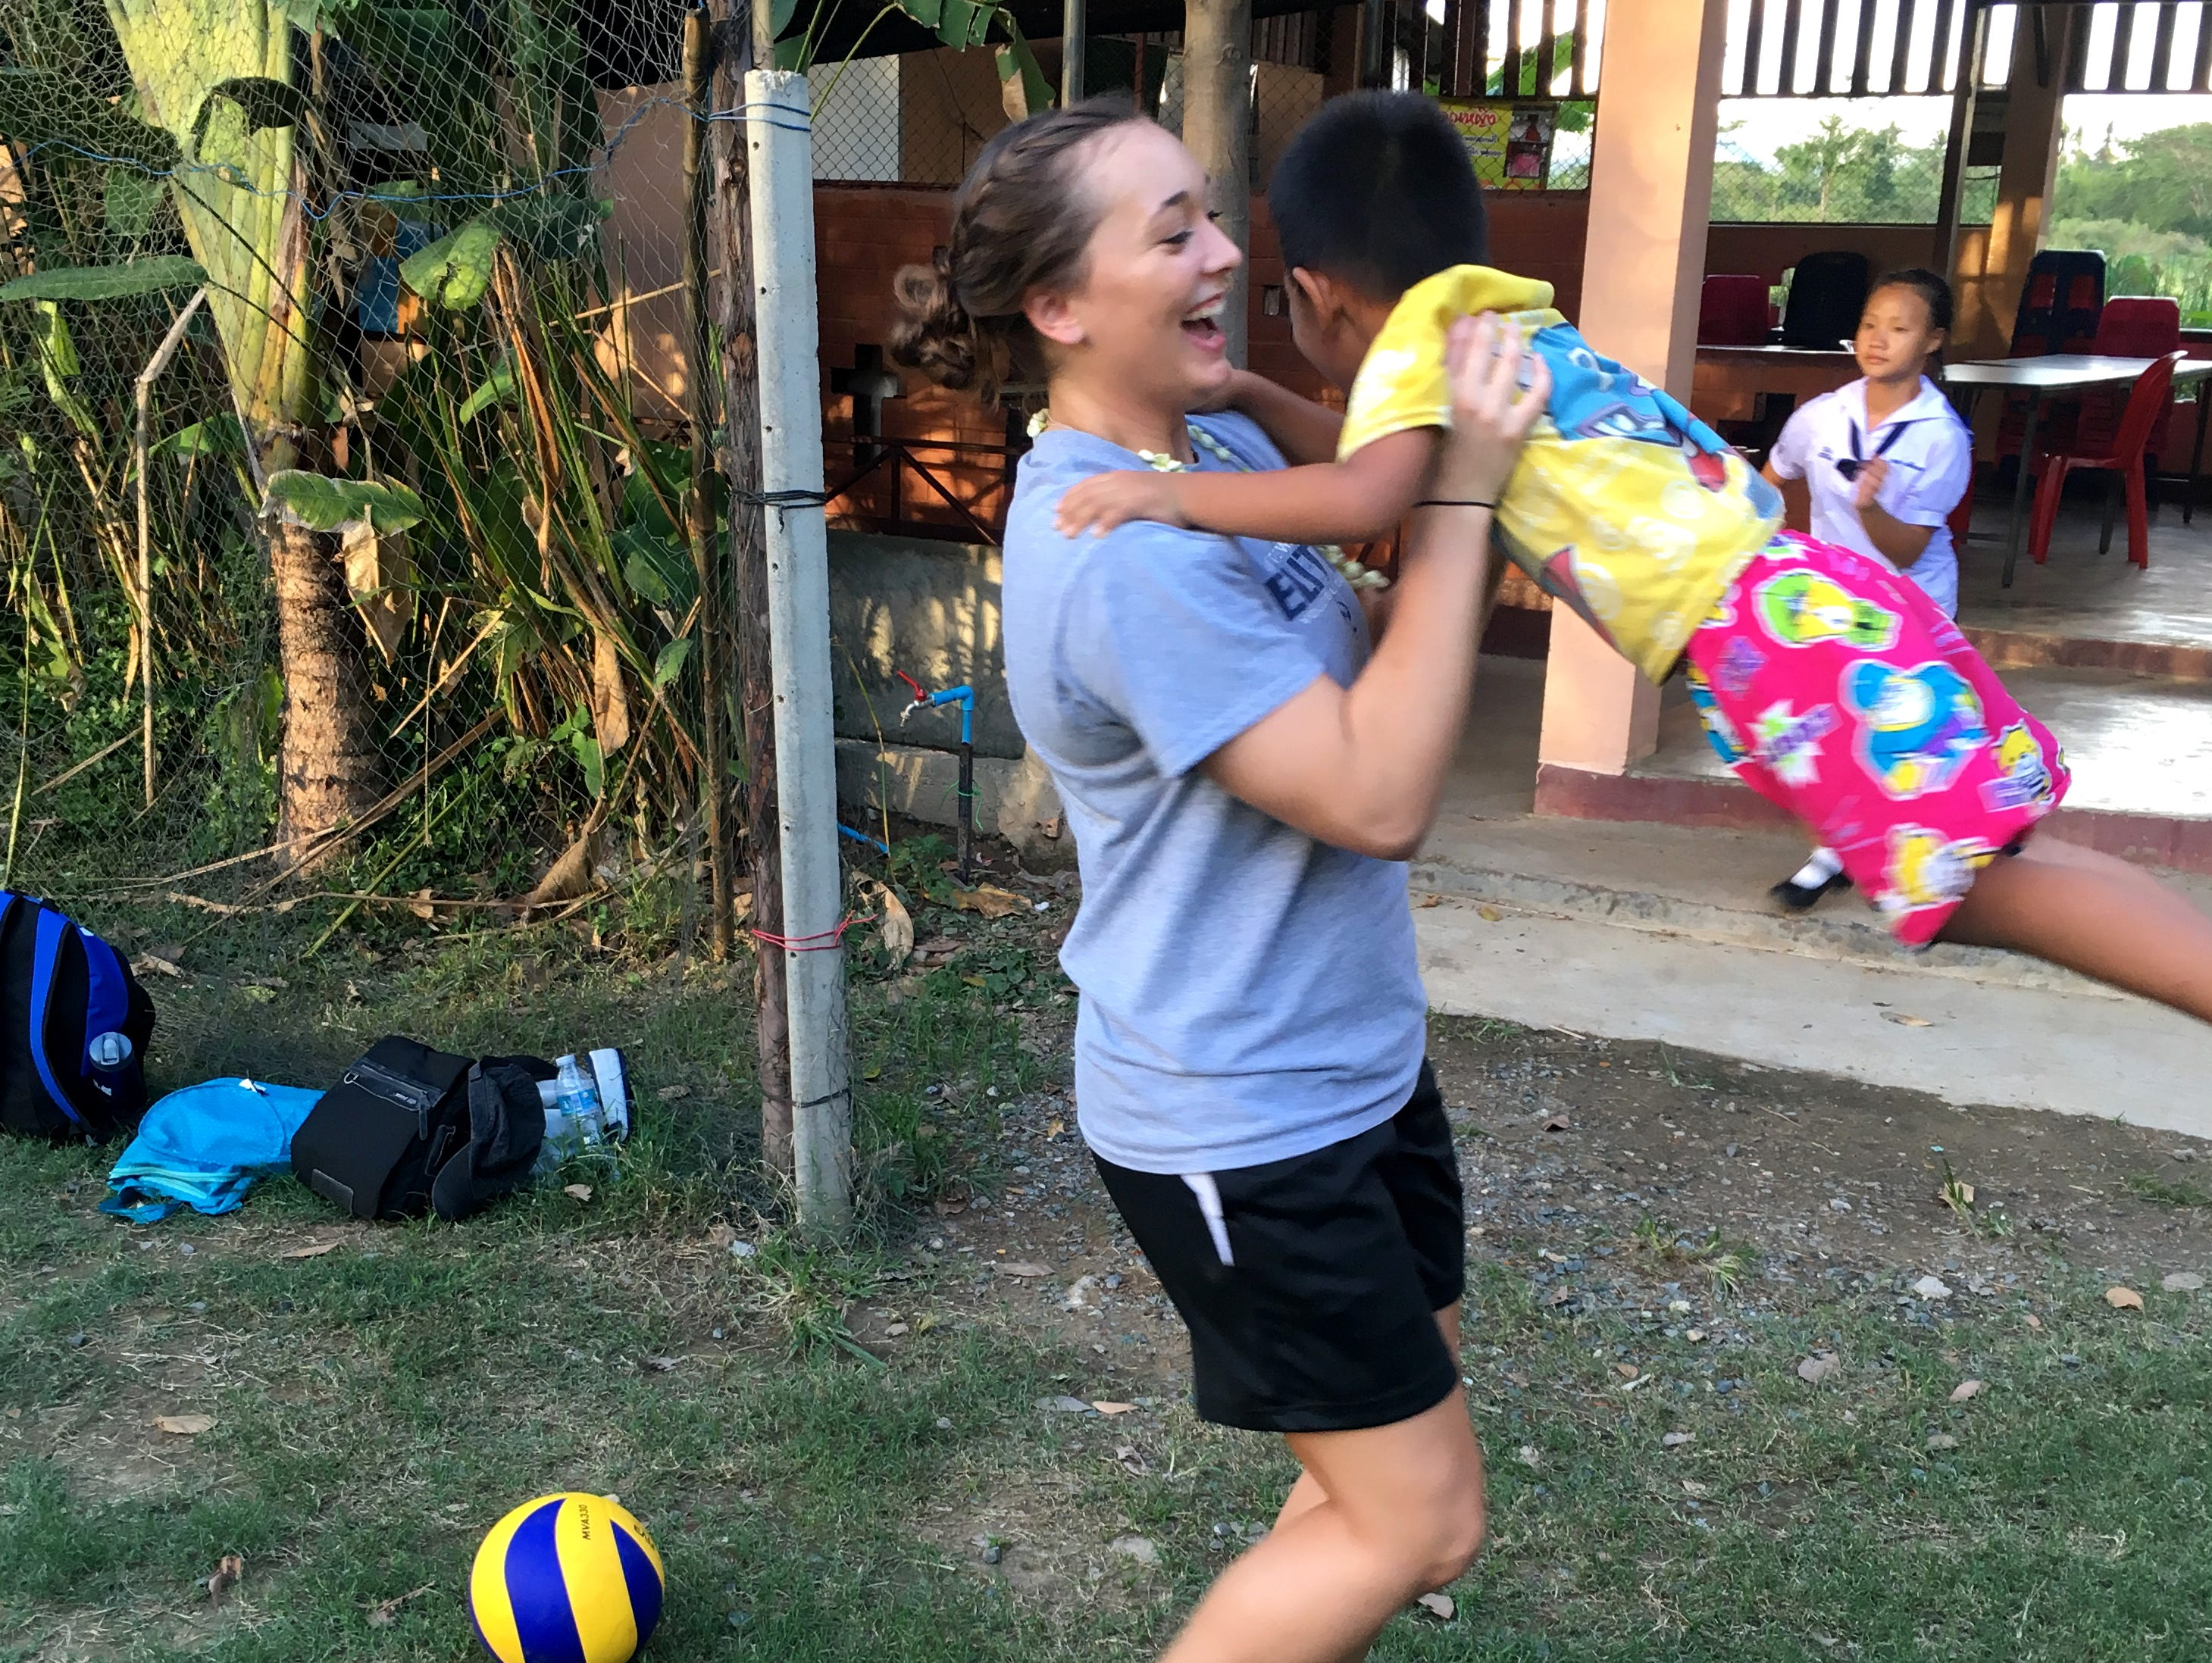 Willard's Makenzie Bouse (center) plays with a Thai child at an orphanage during Bouse's visit to Thailand on an Athletes in Action volleyball mission trip.